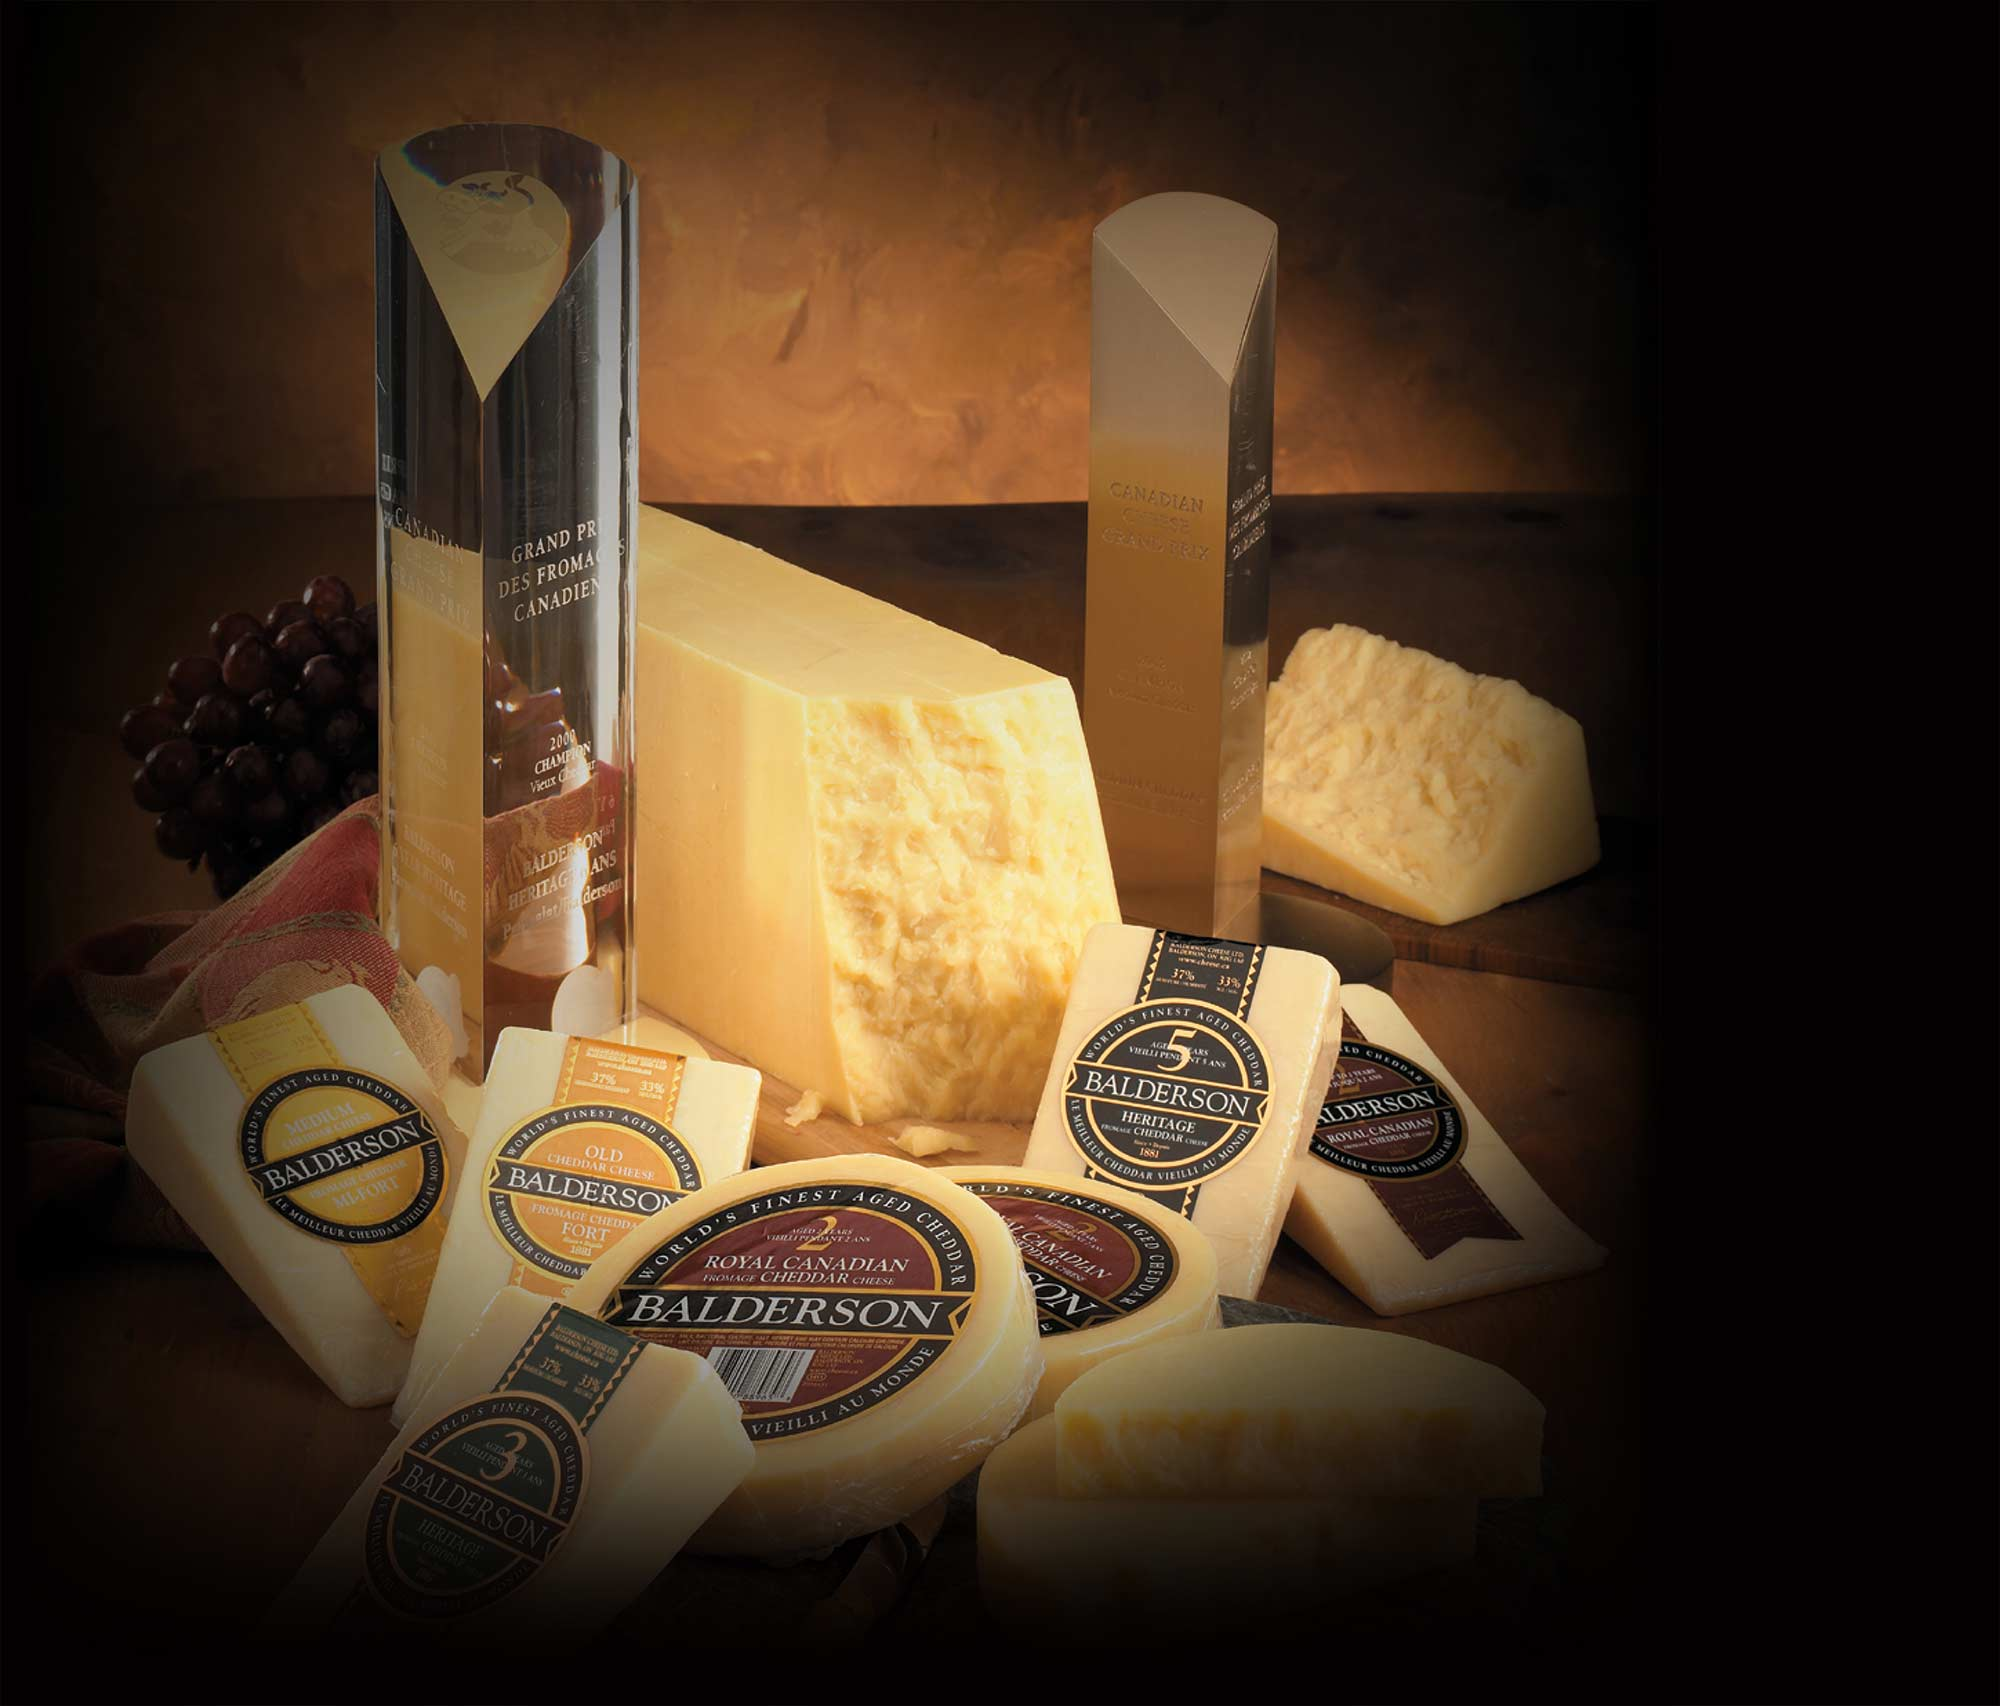 Background image: Cheese and awards